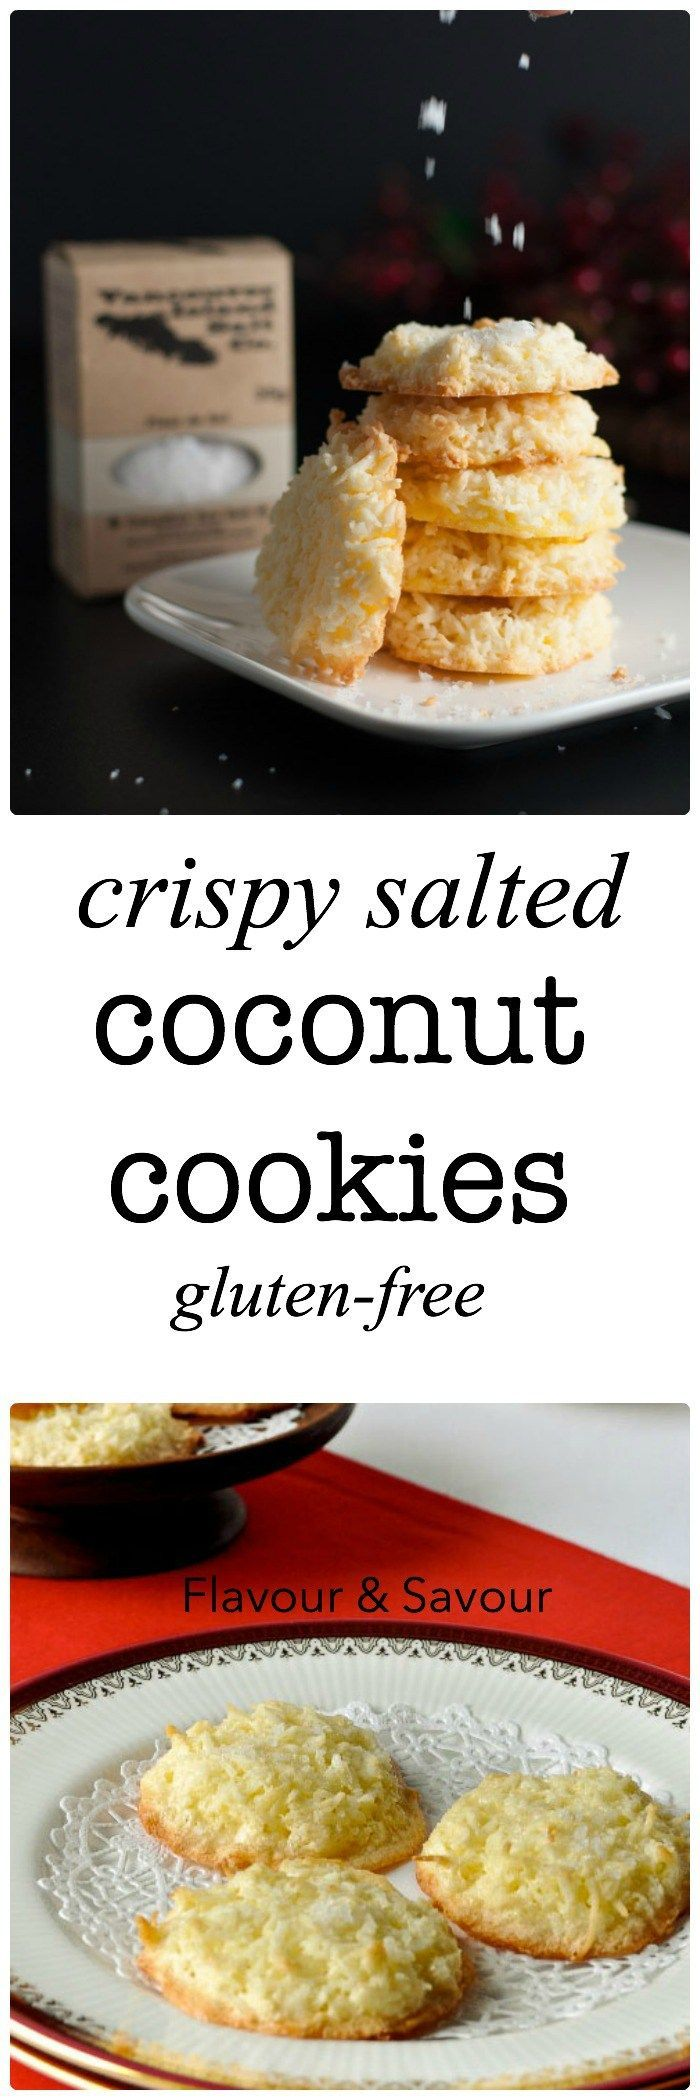 Crispy Salted Coconut Cookies--gluten-free cookies that are first to disappear from the cookie tray! Super easy to make. |www.flavourandsavour.com